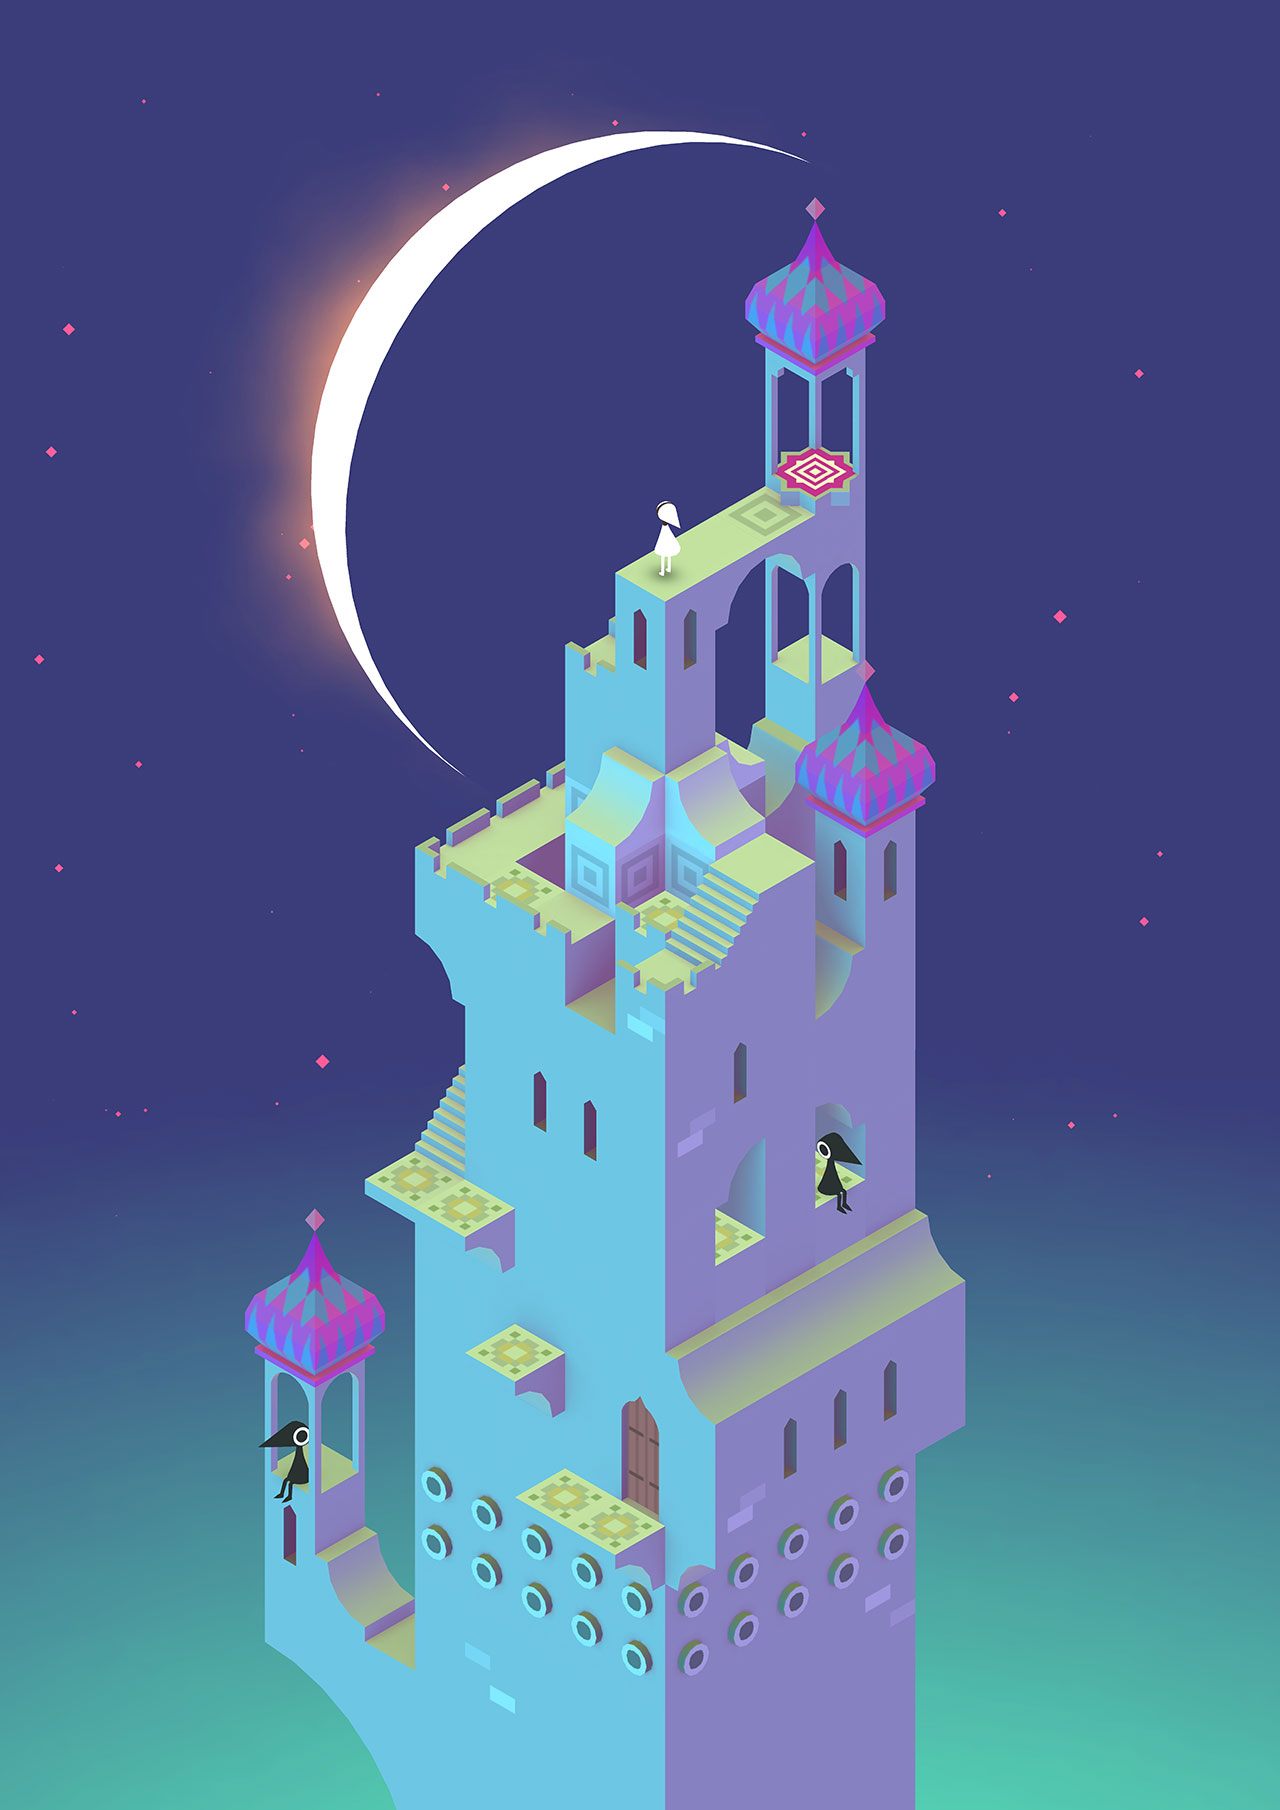 Ken Wong for ustwo studio, Digital illustration, Moon, Monument Valley game, 2014. Image courtesy of Monument Valley.